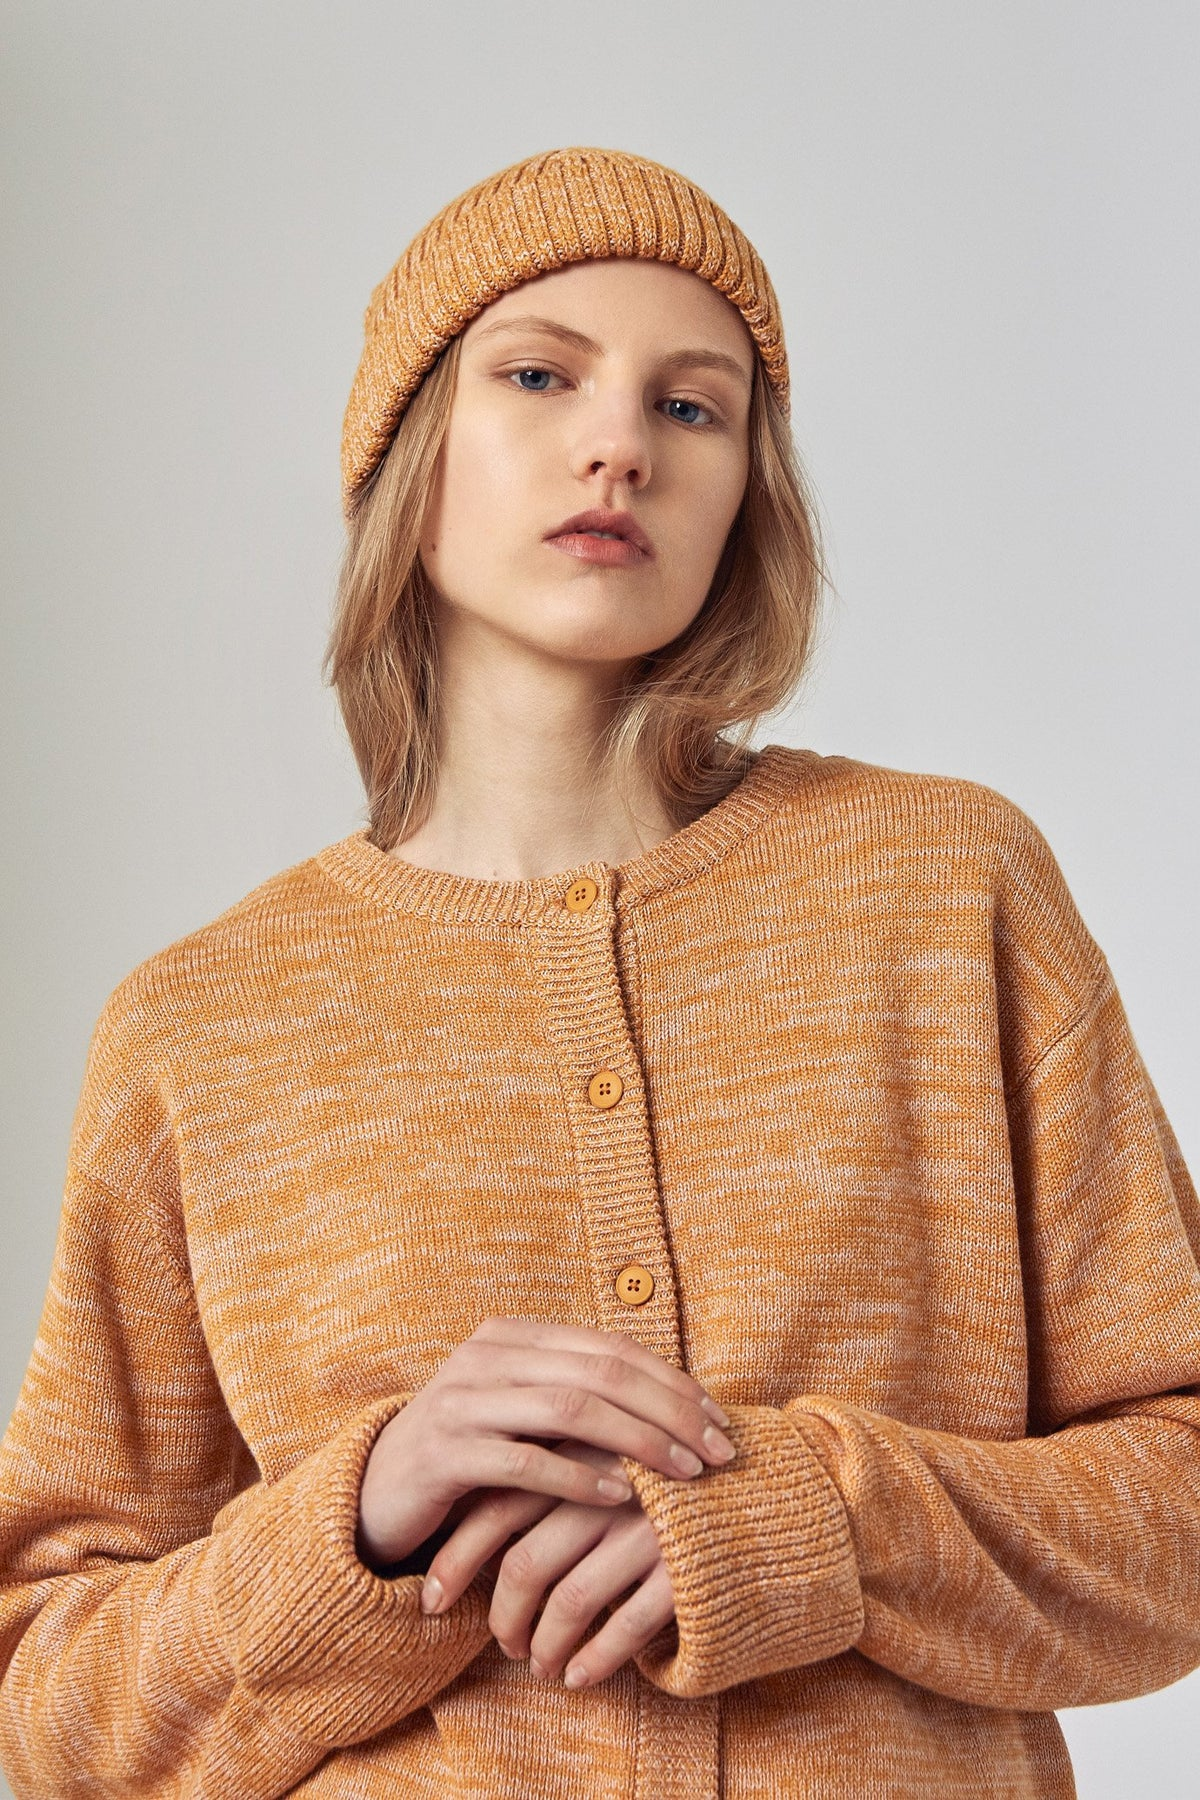 Kowtow stockists Horizon Beanie Amber Merino Ethical Organic Fairtrade